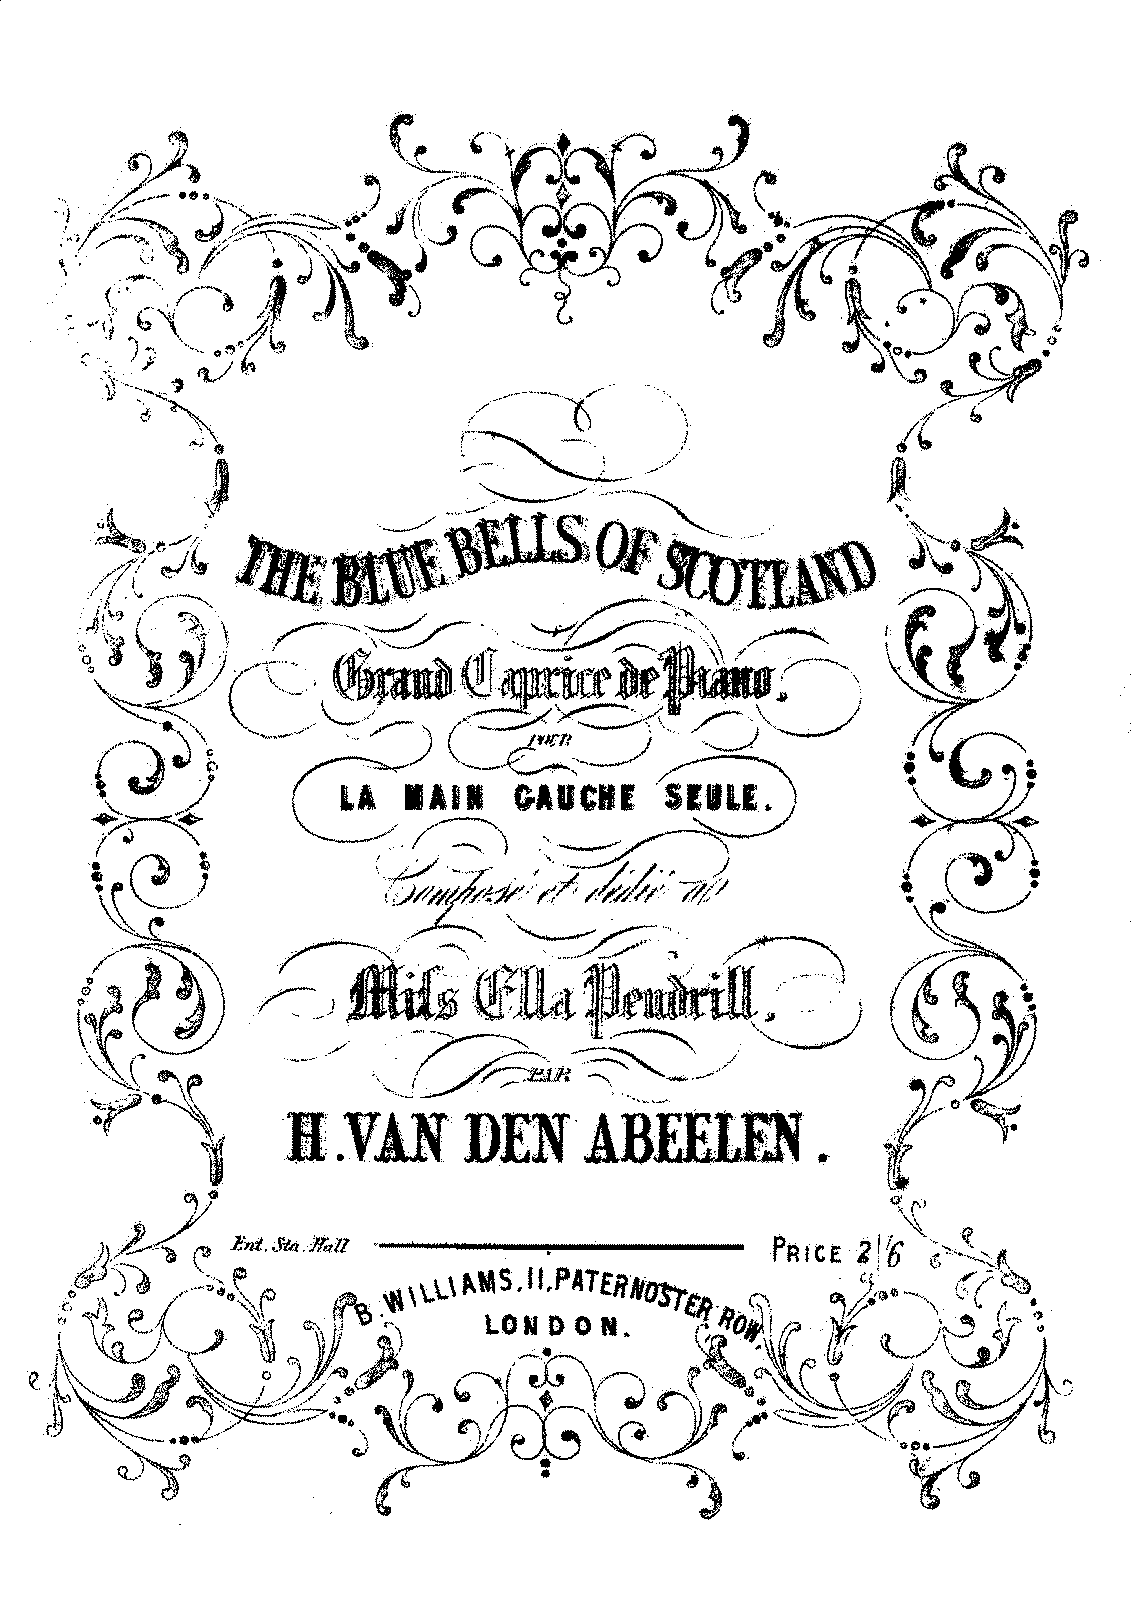 PMLP353522-Abeelen, Henri van den - Blue Bells of Scotland (by Mrs. D. Jordan) - Caprice - LHA - 1863 B. Williams.pdf